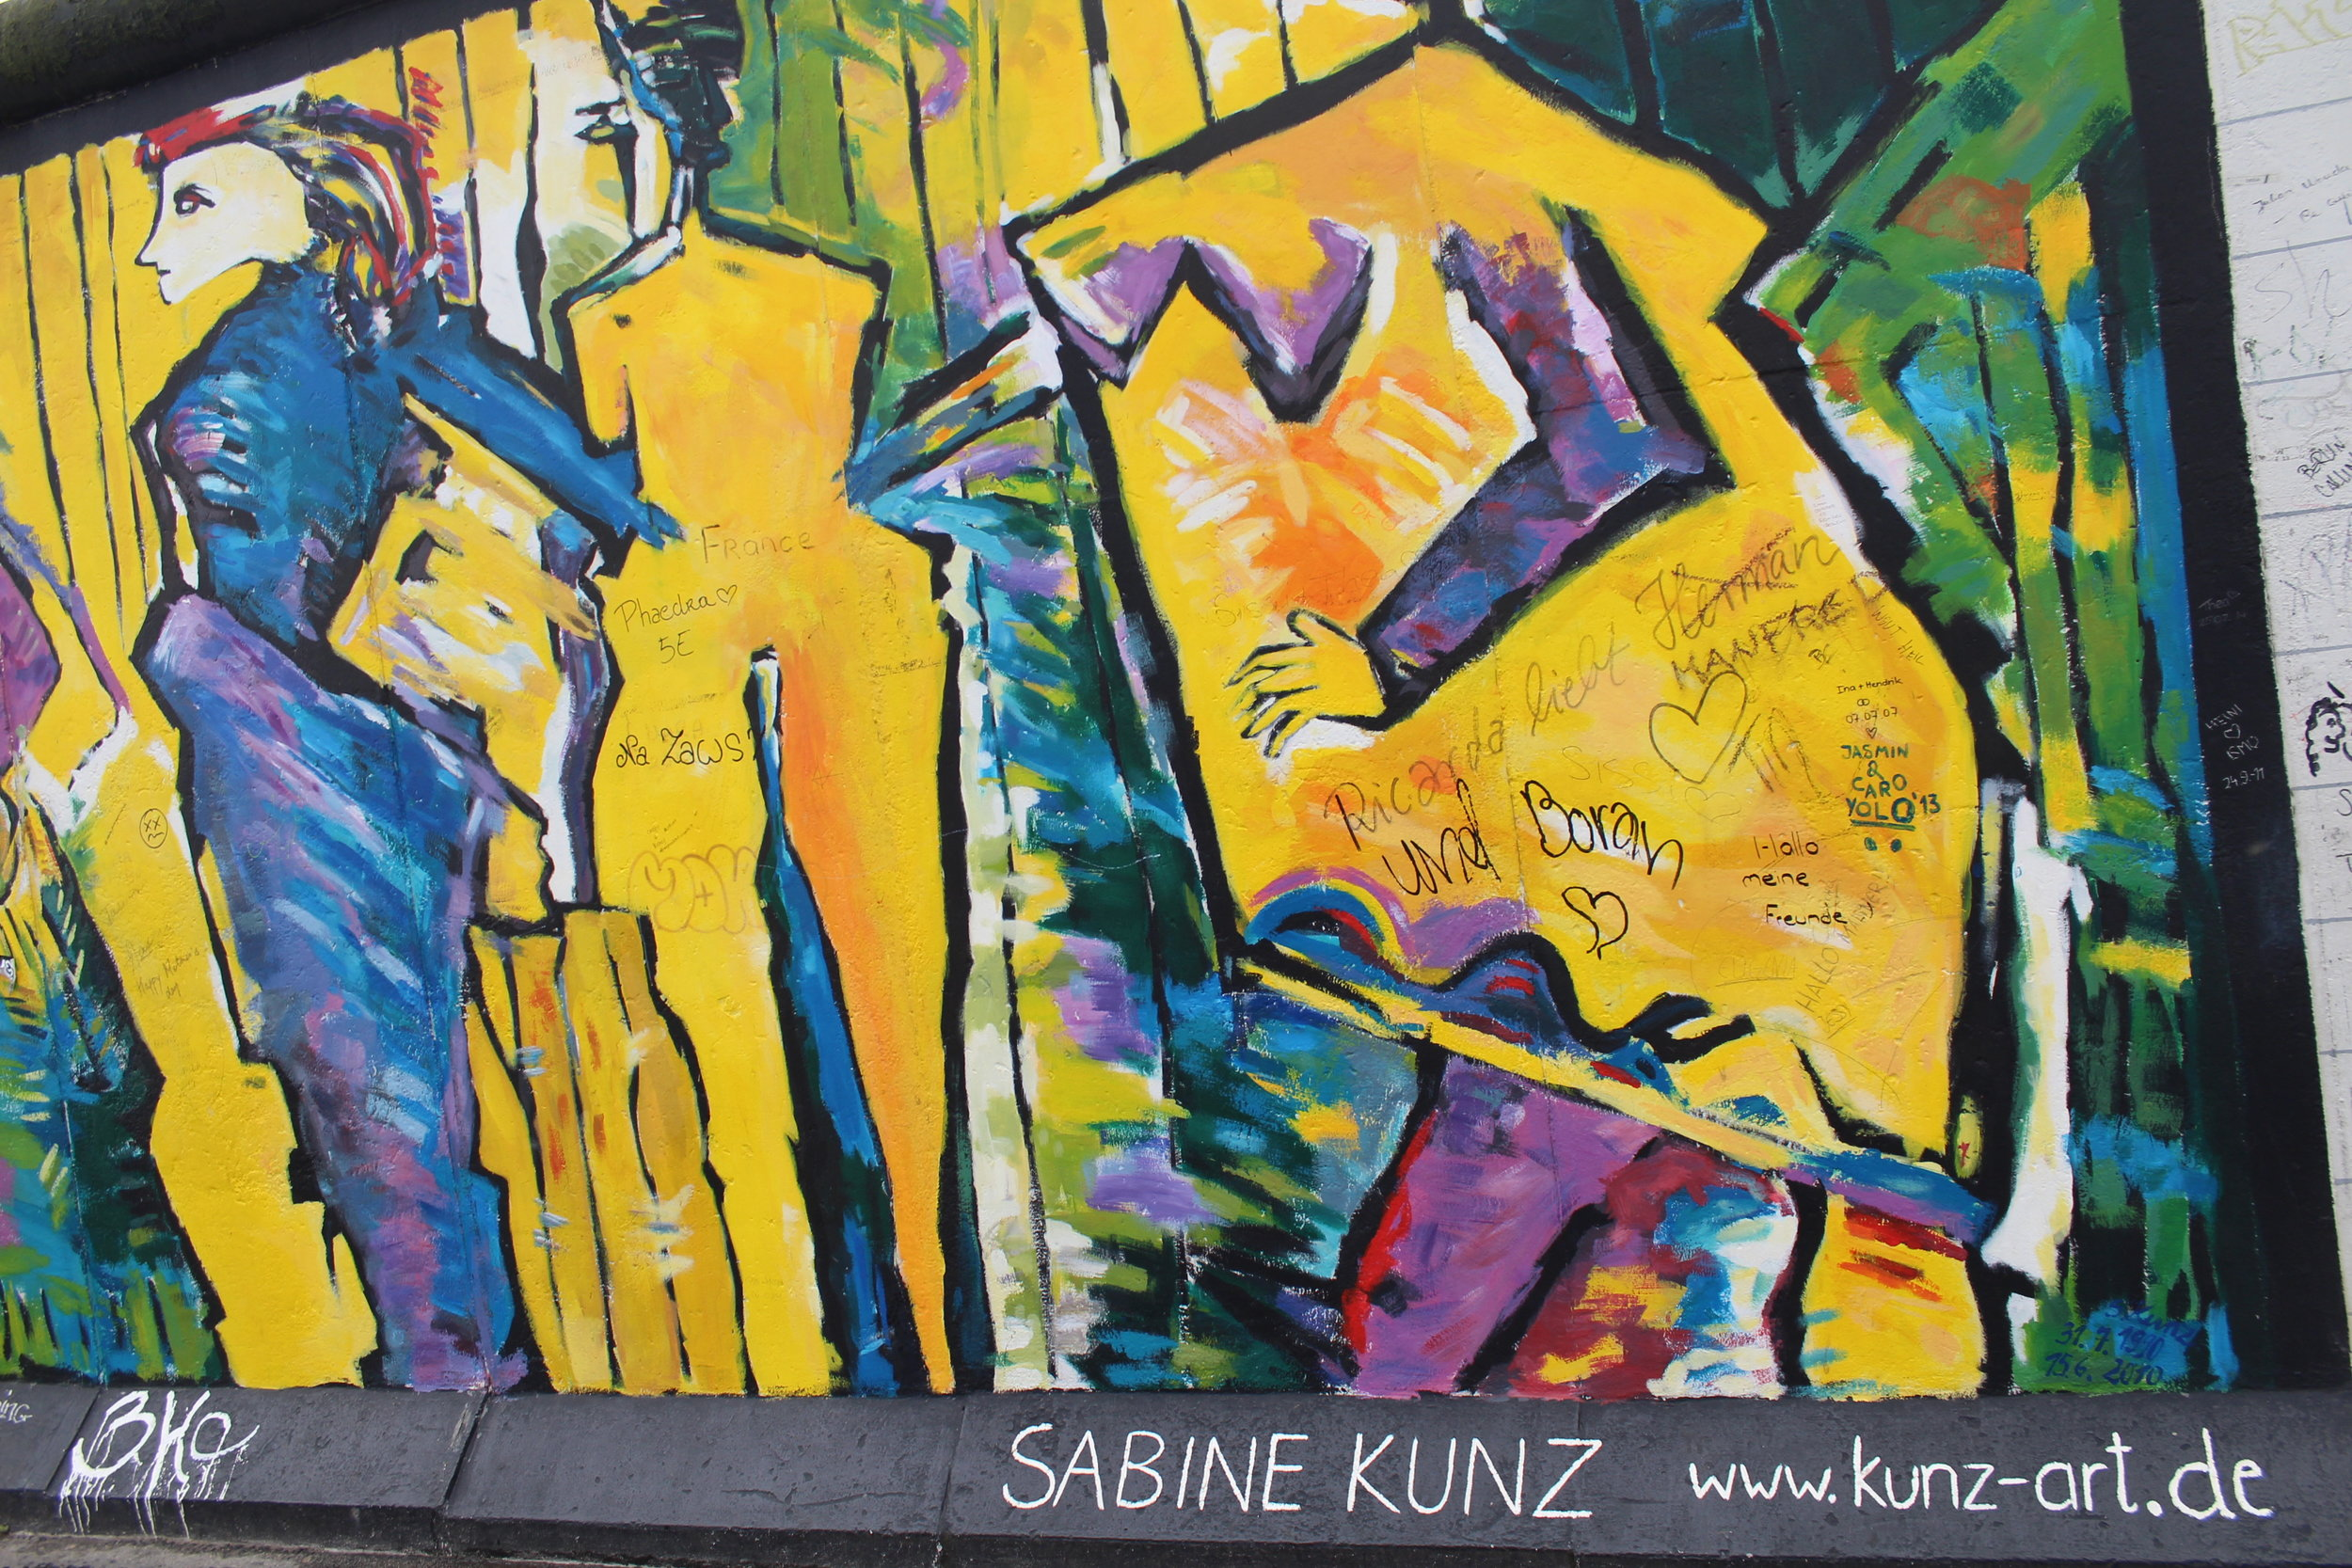 This striking painting has become one of the most memorable images from my trip to the East Side Gallery, created by Sabine Kunz of East Germany.